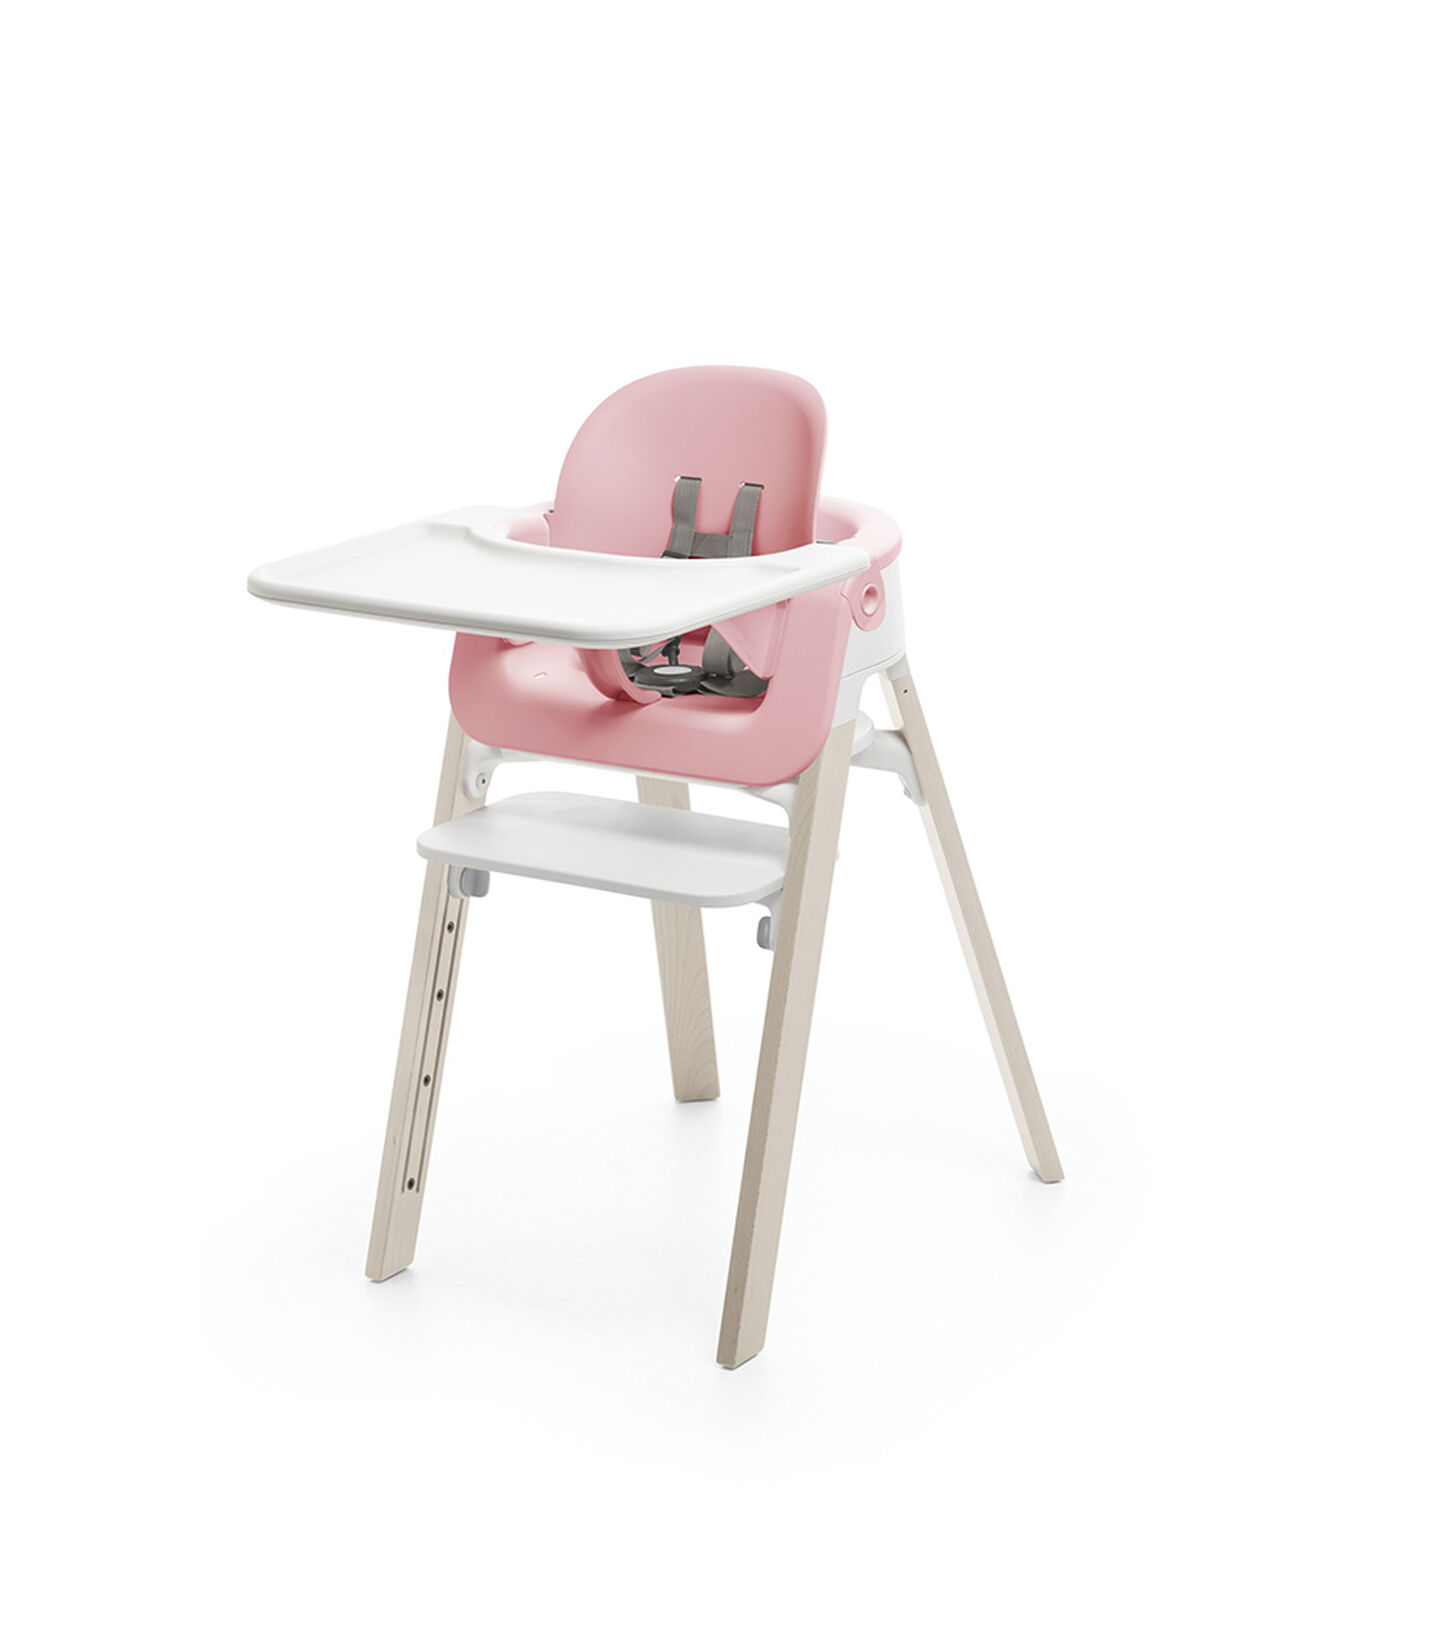 Stokke® Steps™ Baby Set Pink, Pink, mainview view 3